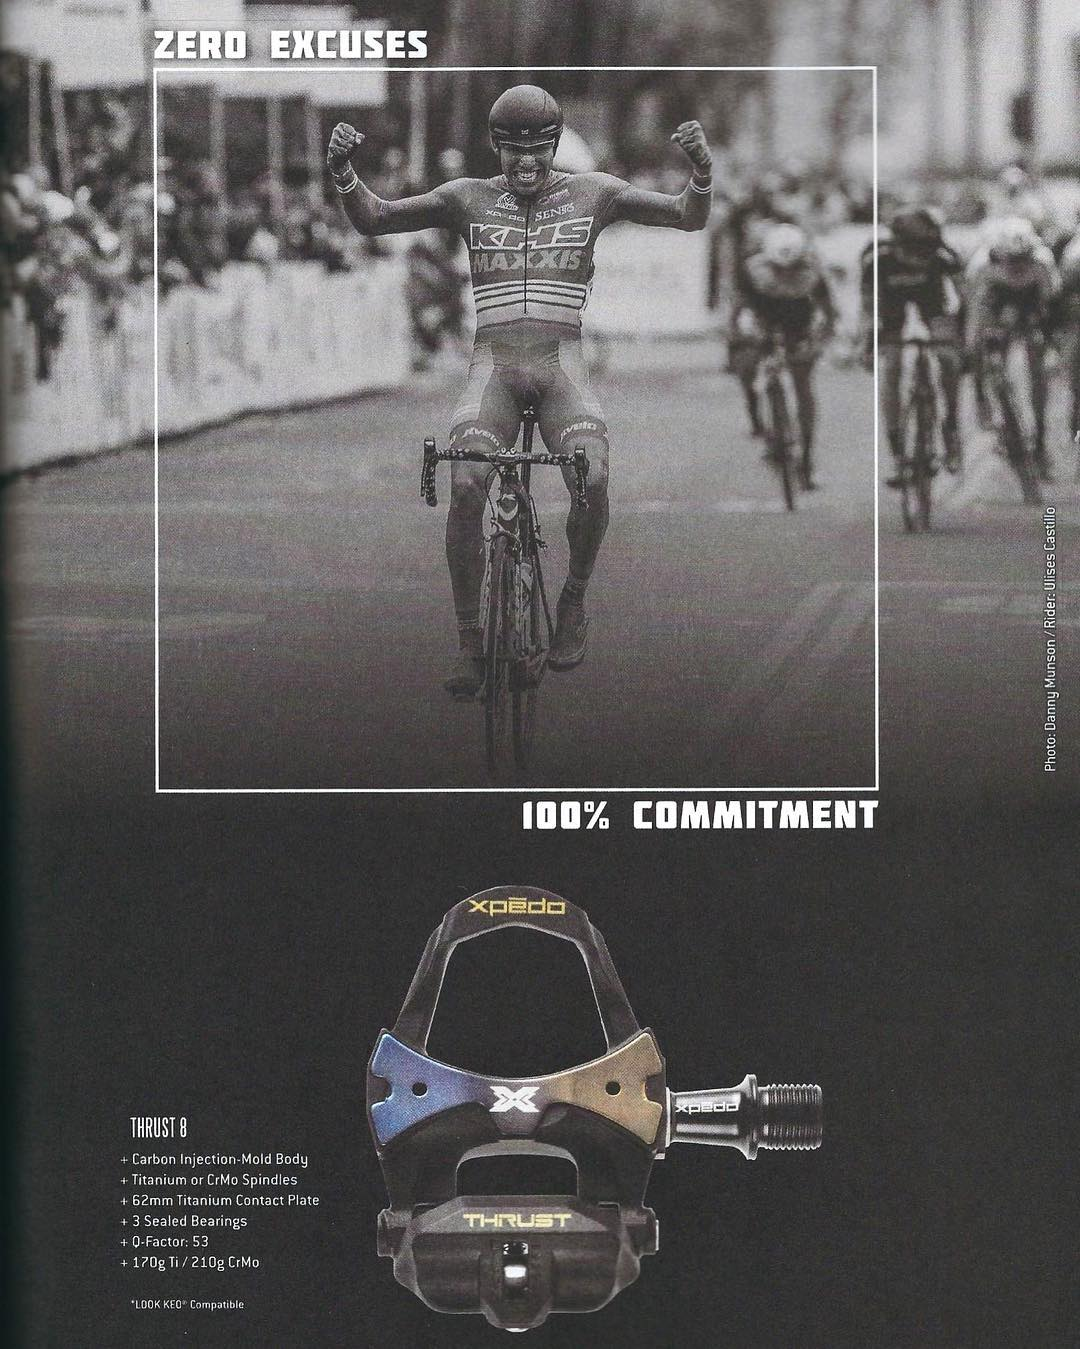 Check out our Tava in @pelotonmagazine July issue with a lovely model from @ipasports #tava